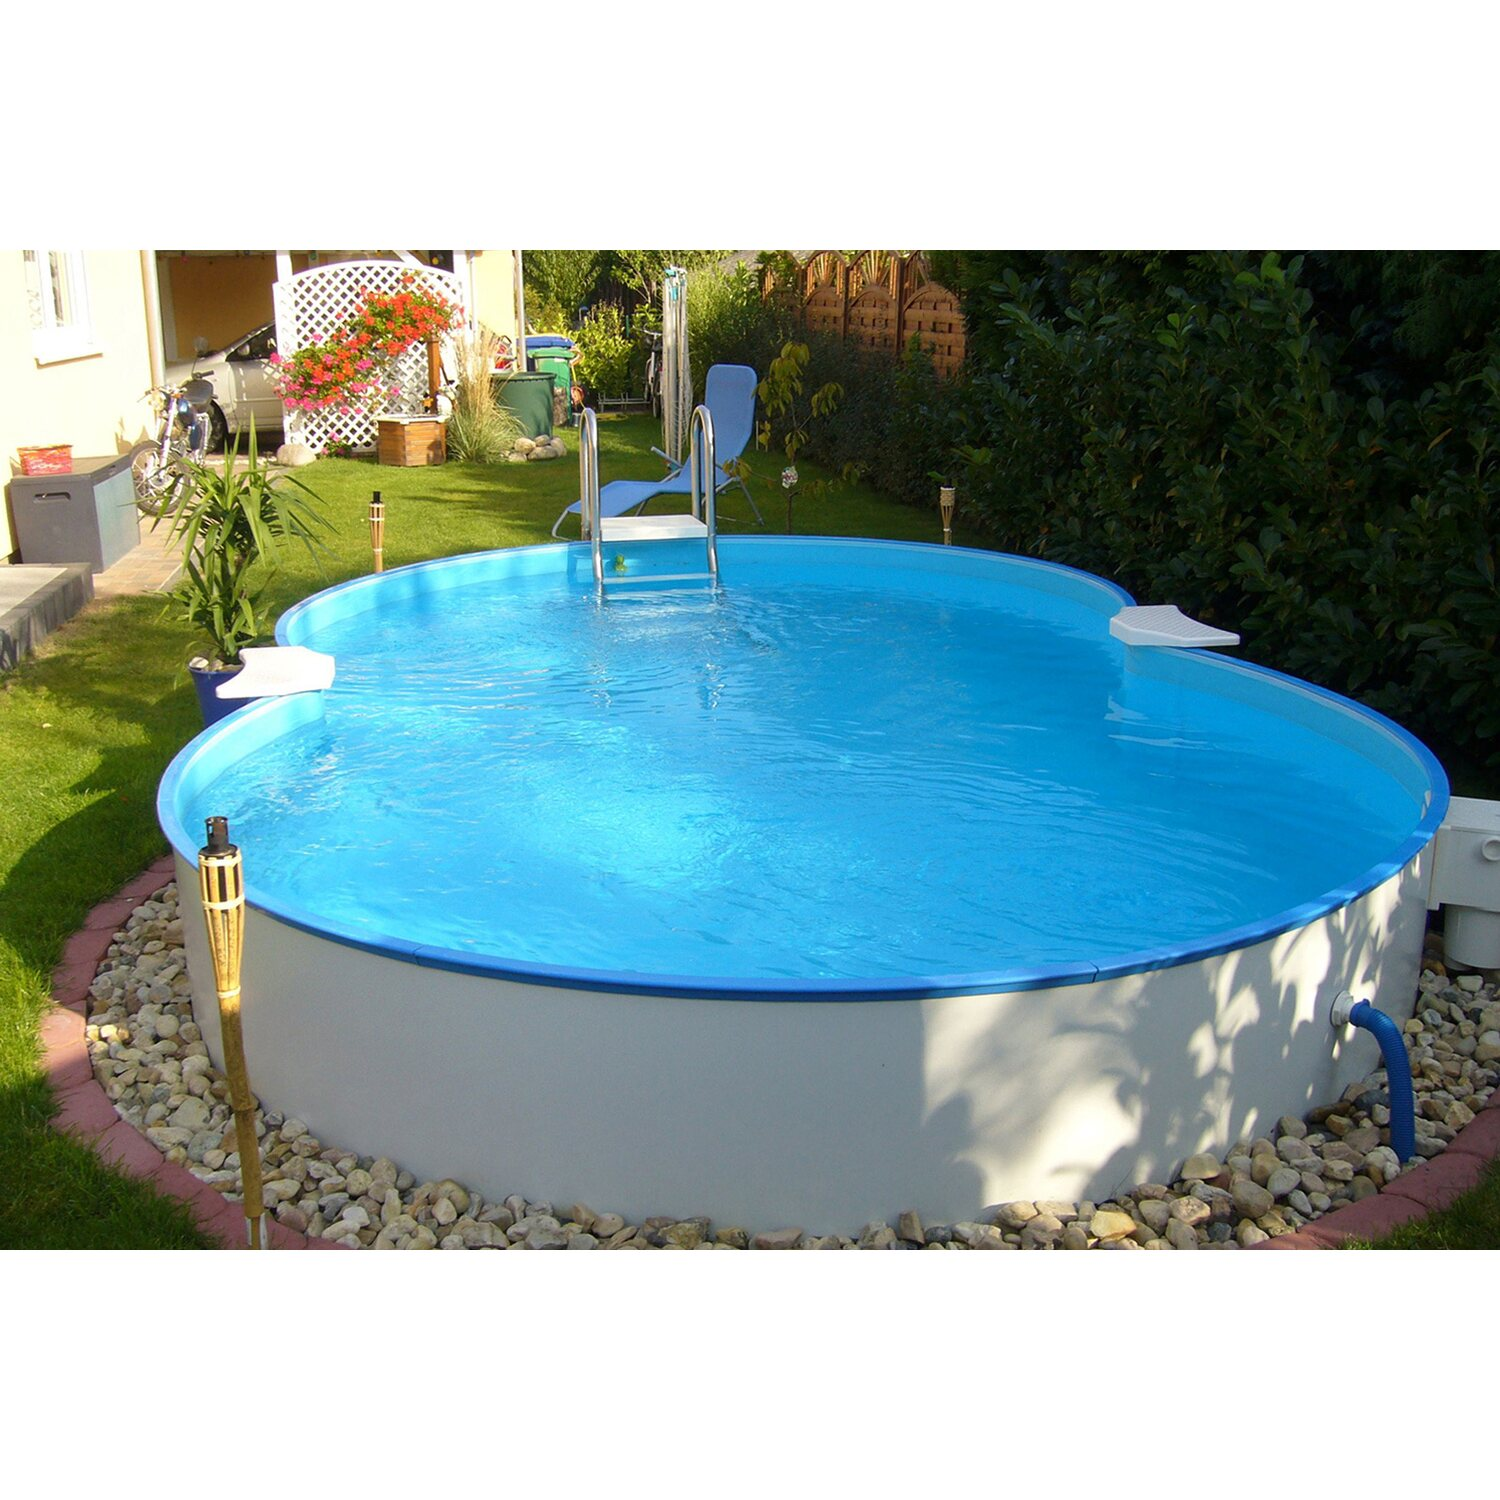 Stahlwand pool set colorado aufstellbecken achtform 625 cm for Badepool obi